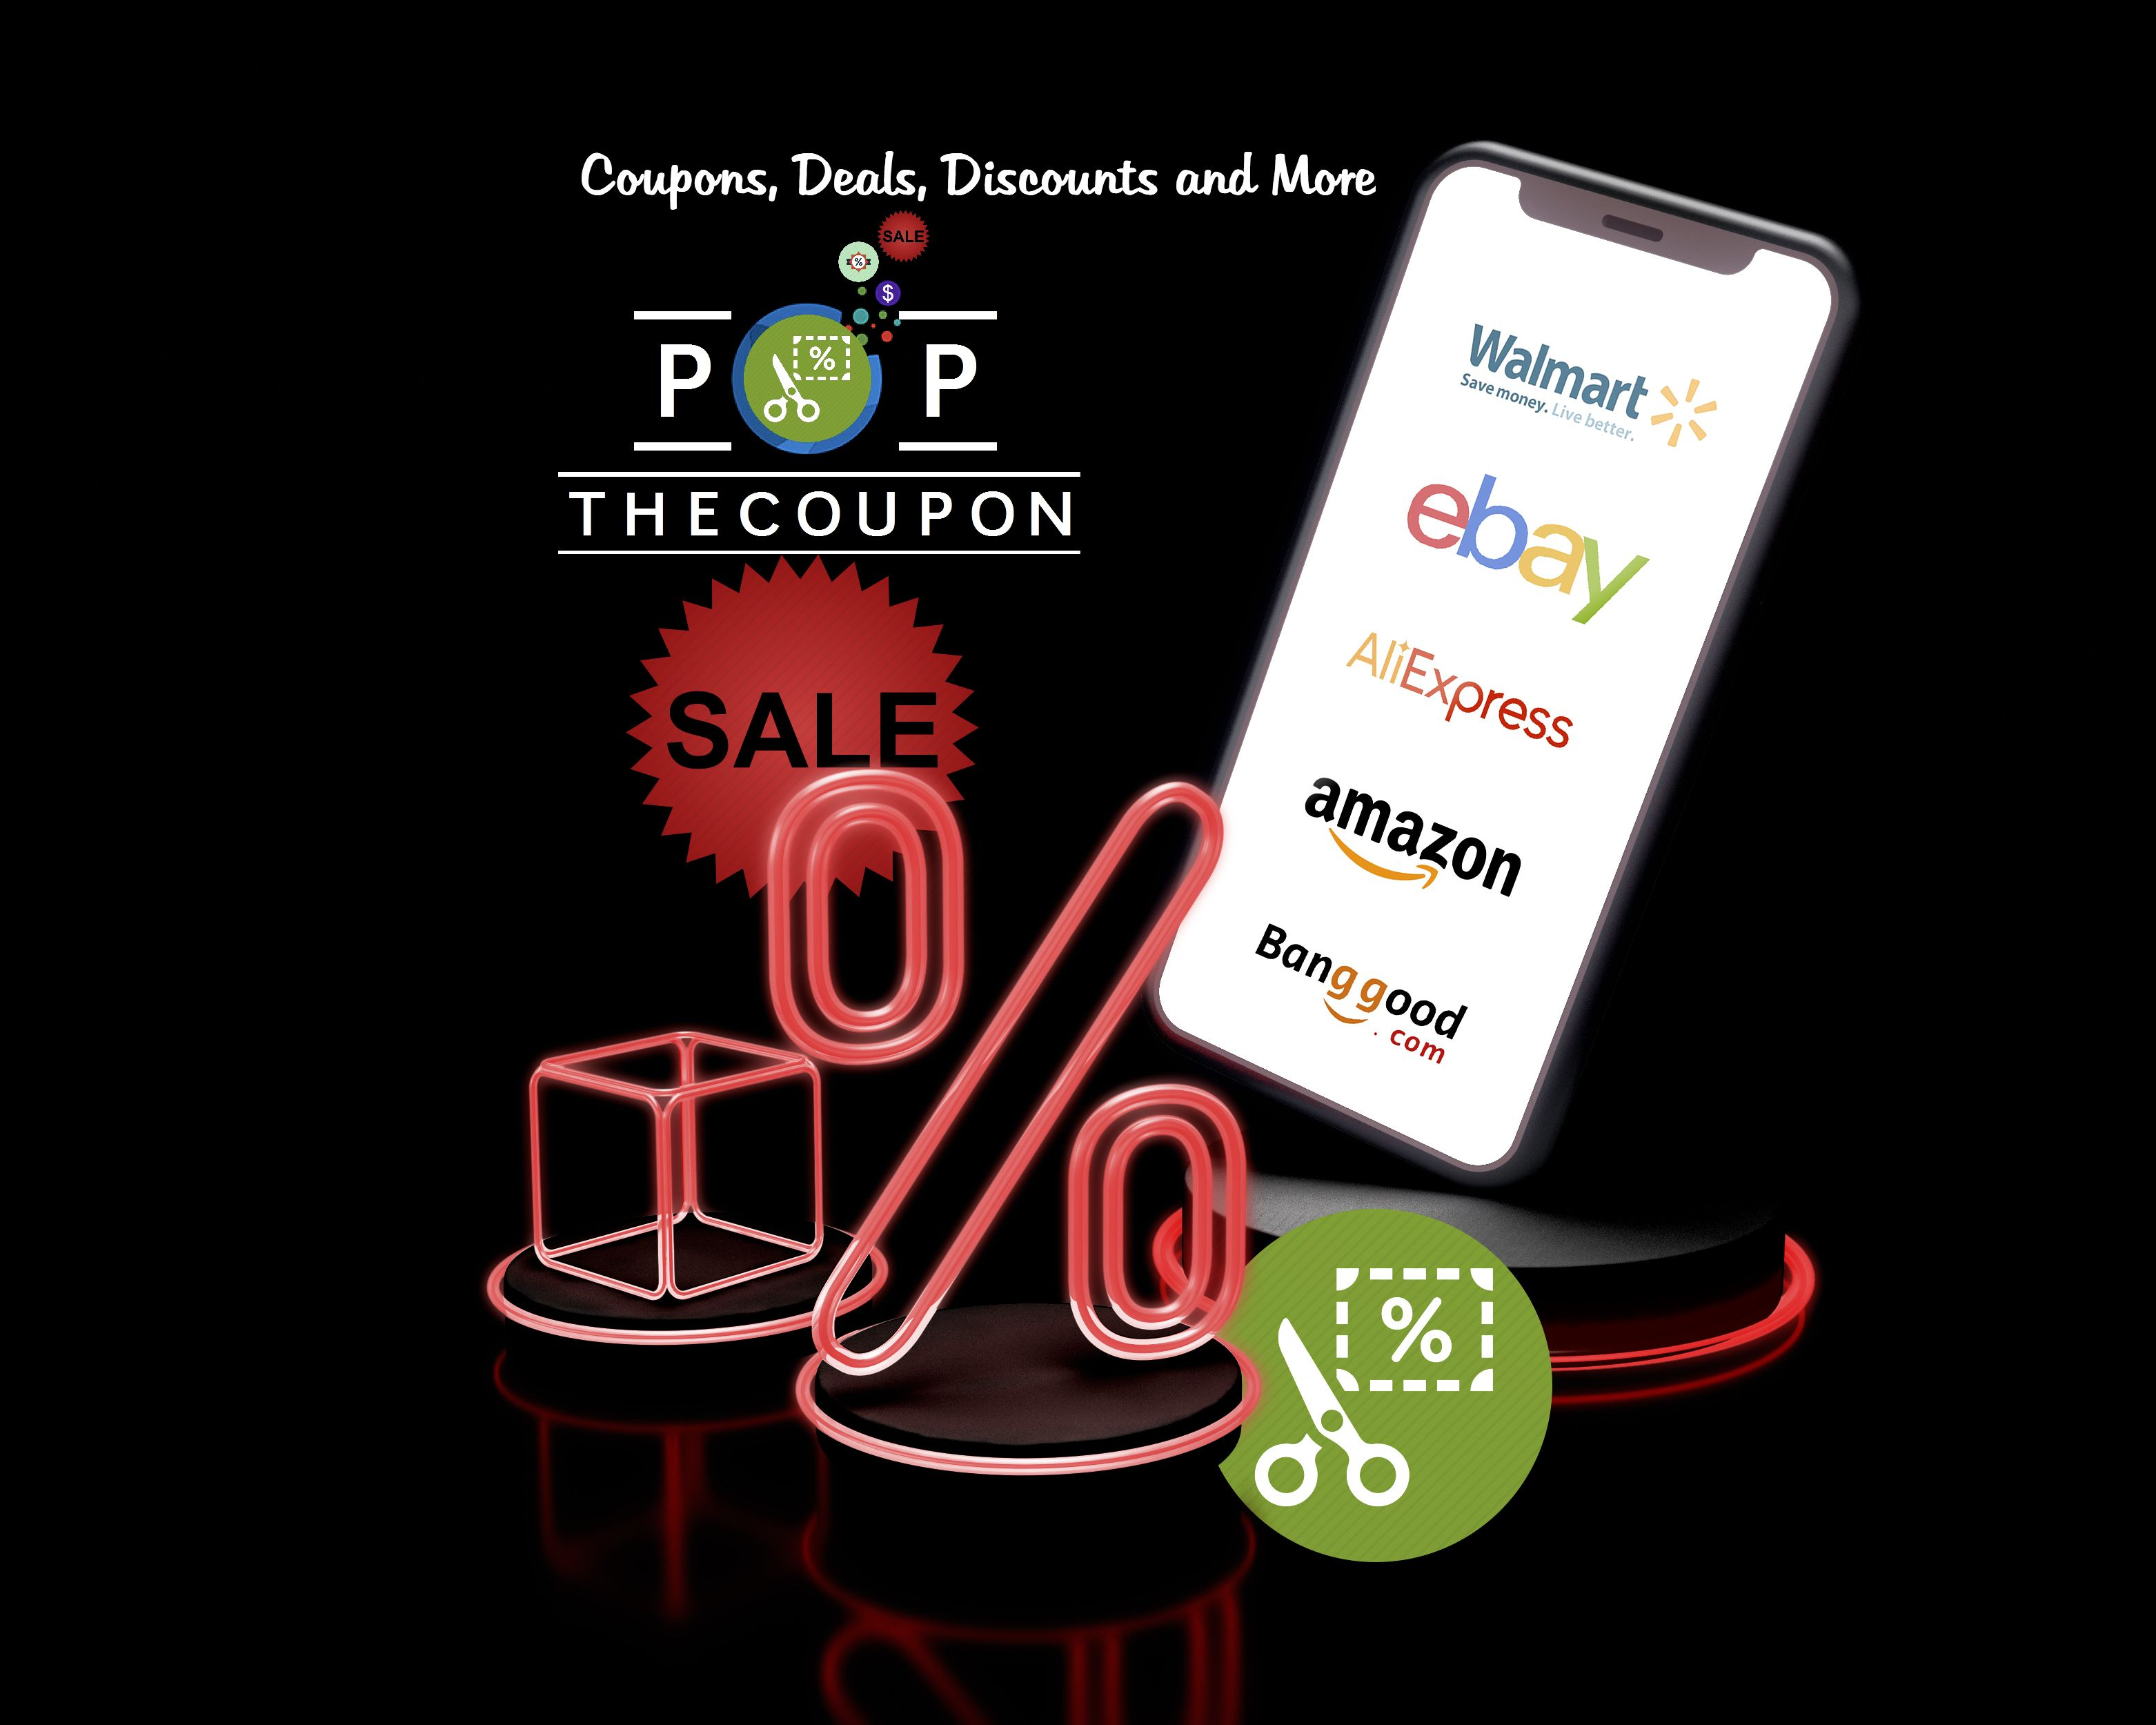 Black Friday Coupon Codes 2020 In 2020 Coupons Online Discount Codes Coupon Codes